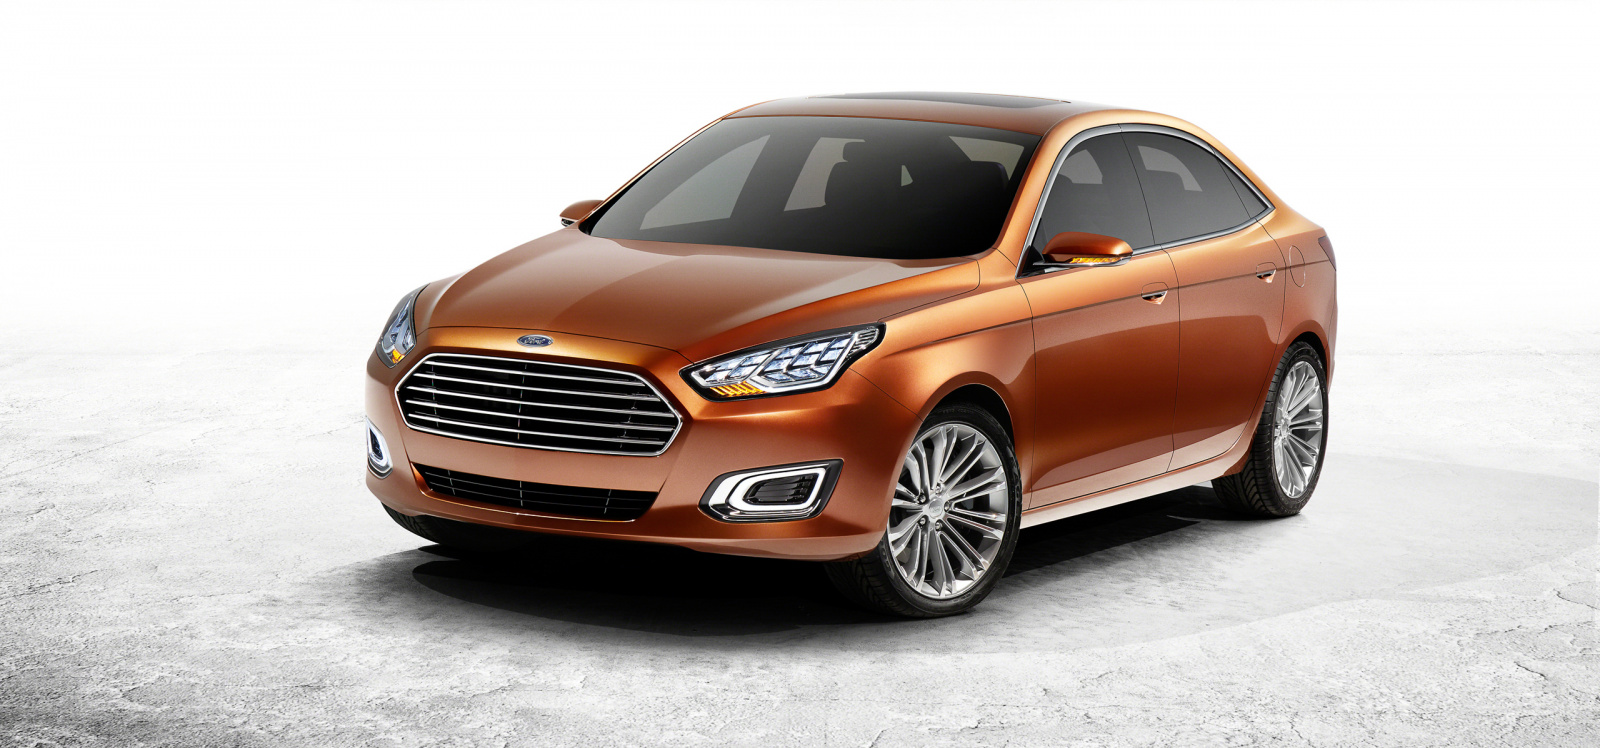 Ford Escort Concept - Foto eines Ford Concept-Cars